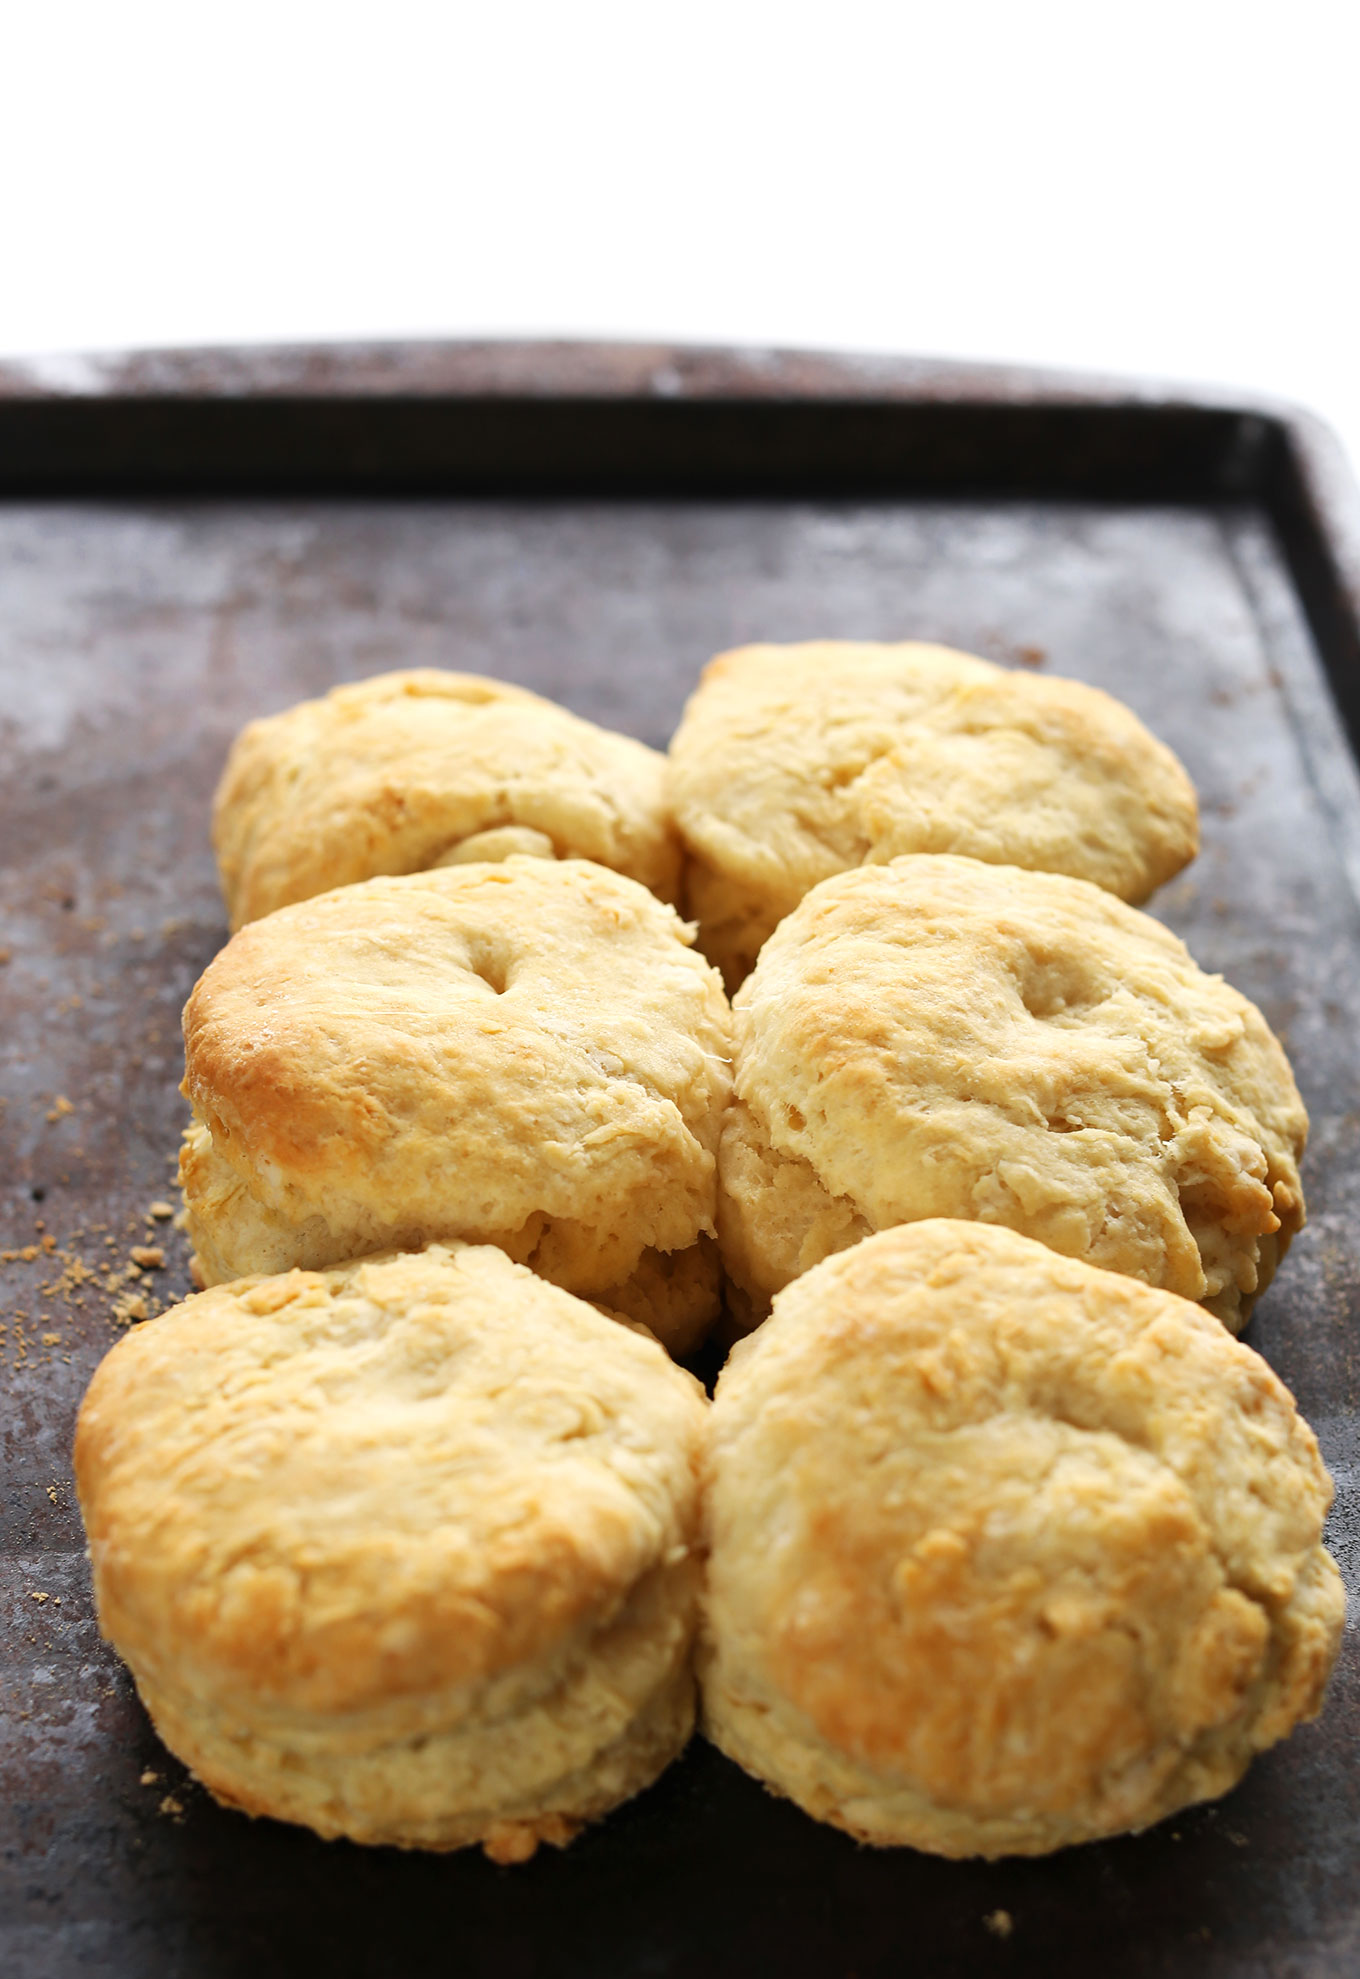 Baking sheet with six freshly baked flaky vegan biscuits